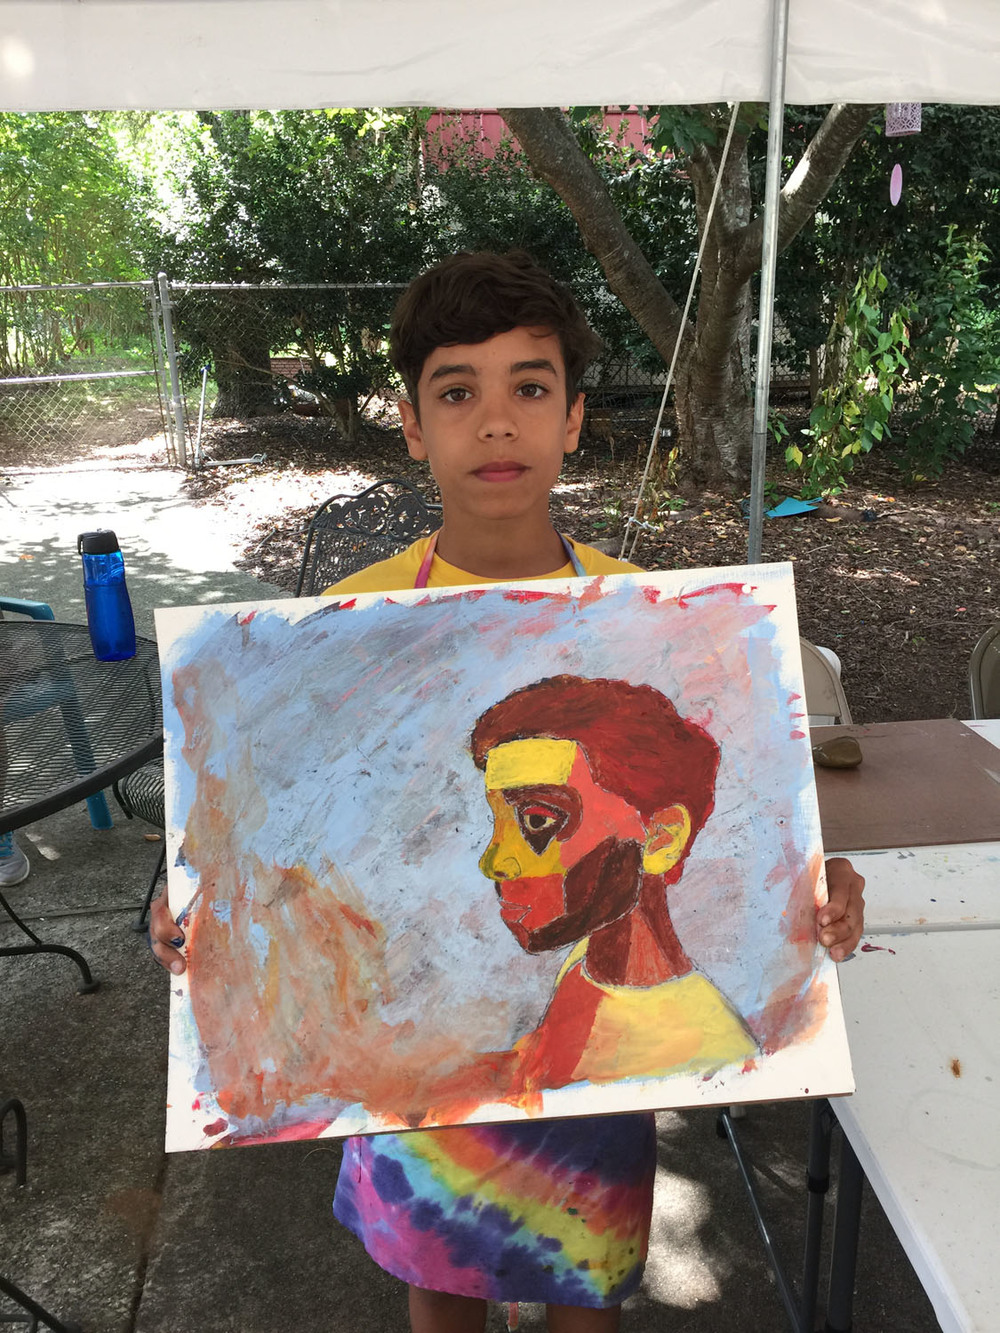 art-camp-children-at-tracey-marshall-art-studio-artbytjm-summer-fun-IMG_4936.jpg